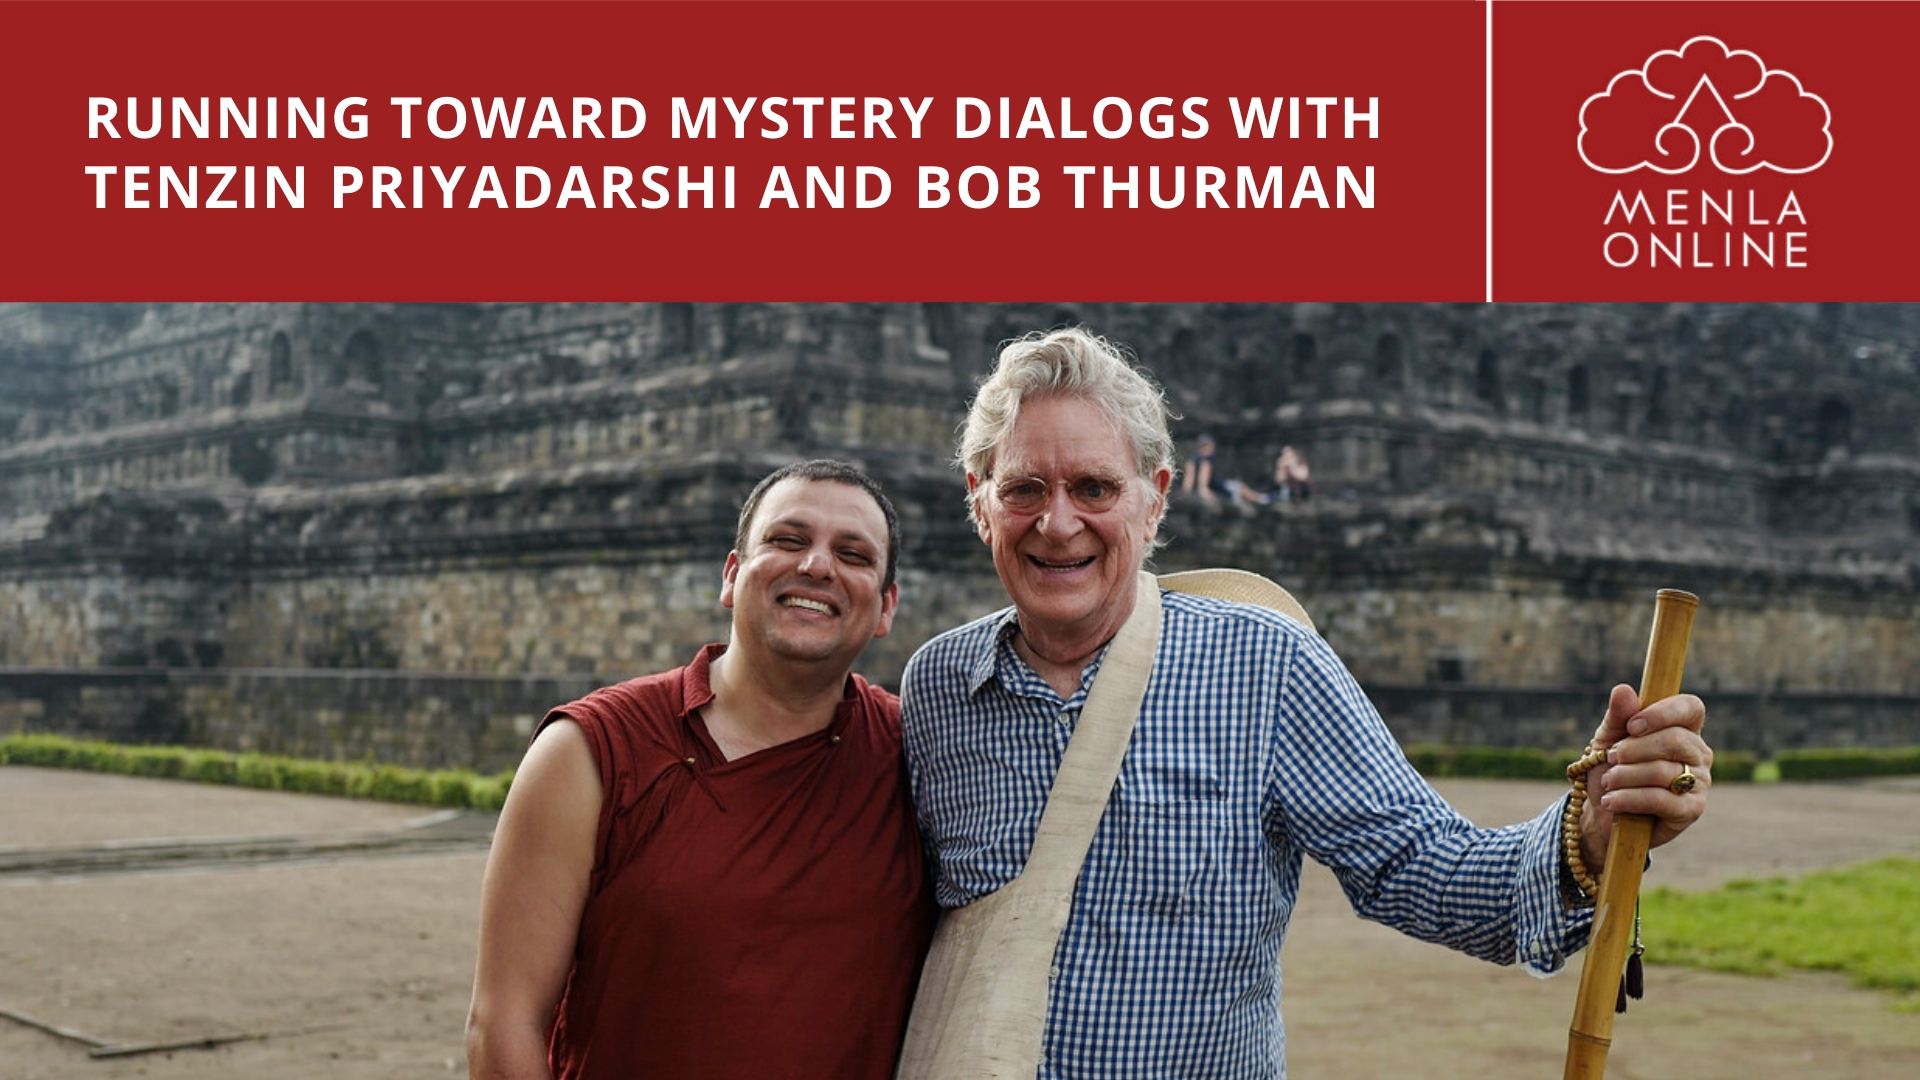 Bhakti & Devotion in Buddhism & Towards Building a New Normal : Reflections from Running Toward Mystery Online Dialogs with Tenzin Priyadarshi @ Menla Retreat and Dewa Spa